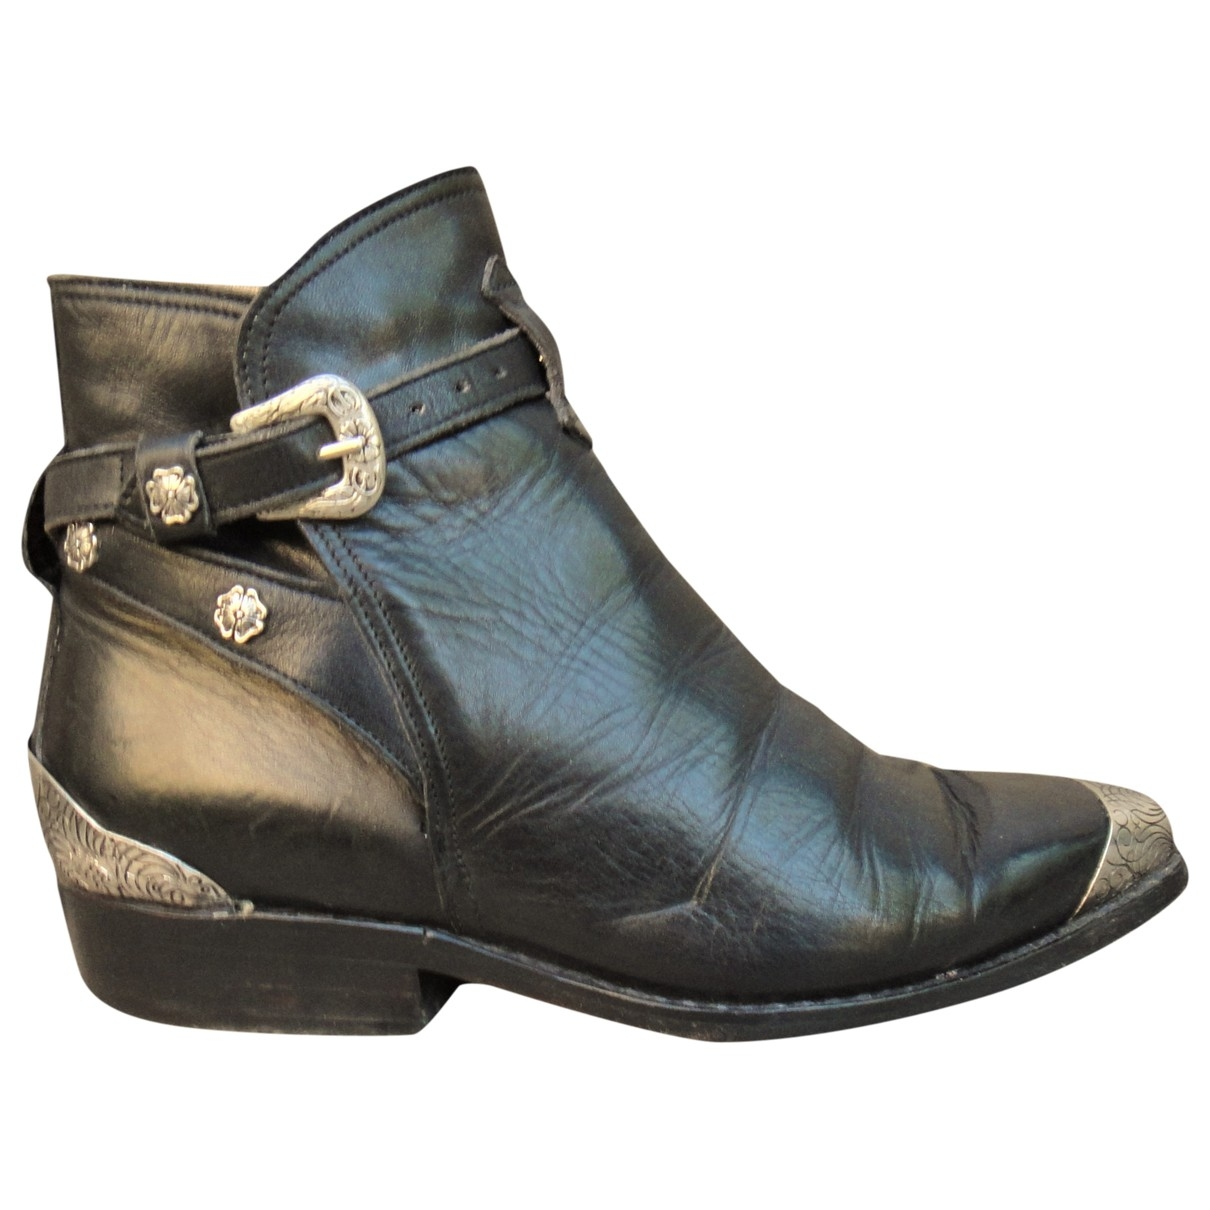 Sartore \N Black Leather Ankle boots for Women 35 EU